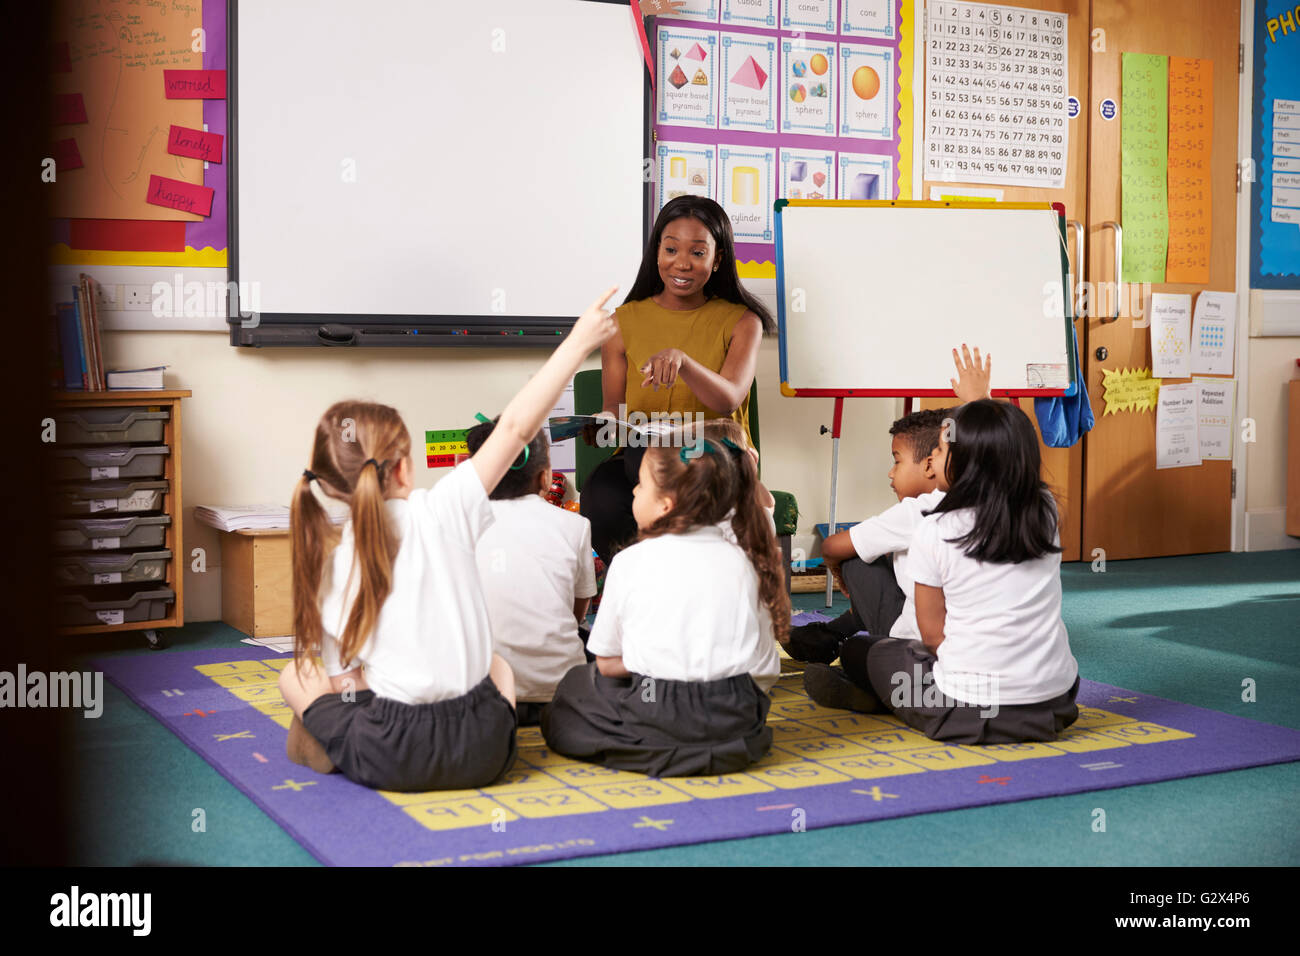 Teacher Asks Elementary School Pupils Question In Classroom - Stock Image